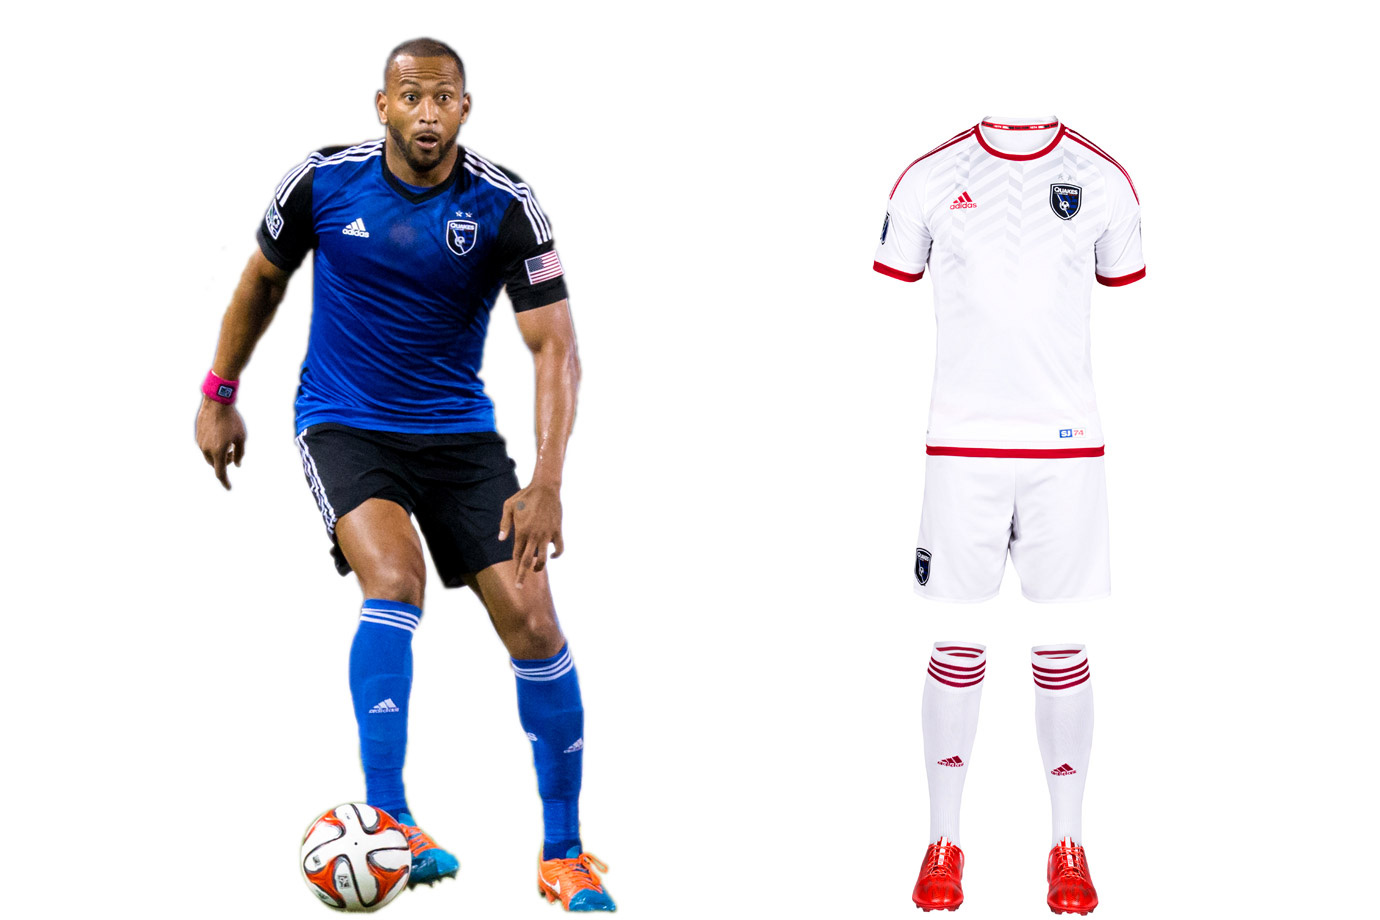 """Earthquakes"" is an appropriate moniker for a club that's experienced so much upheaval. While the new Avaya Stadium offers stability, the brand remains in flux. SJ's '14 overhaul produced a beautiful blue-and-black primary kit that's already a modern classic. But the logo, awkwardly anchored by ""Quakes""—a nickname of a nickname—lacks gravitas. We liked the re-introduction of the NASL-era red, which inspired last year's away kit. That's been replaced by a new white secondary set (yes, another one). It lacks the creativity, individuality and ambition that should be associated with a Bay Area club on the rise."